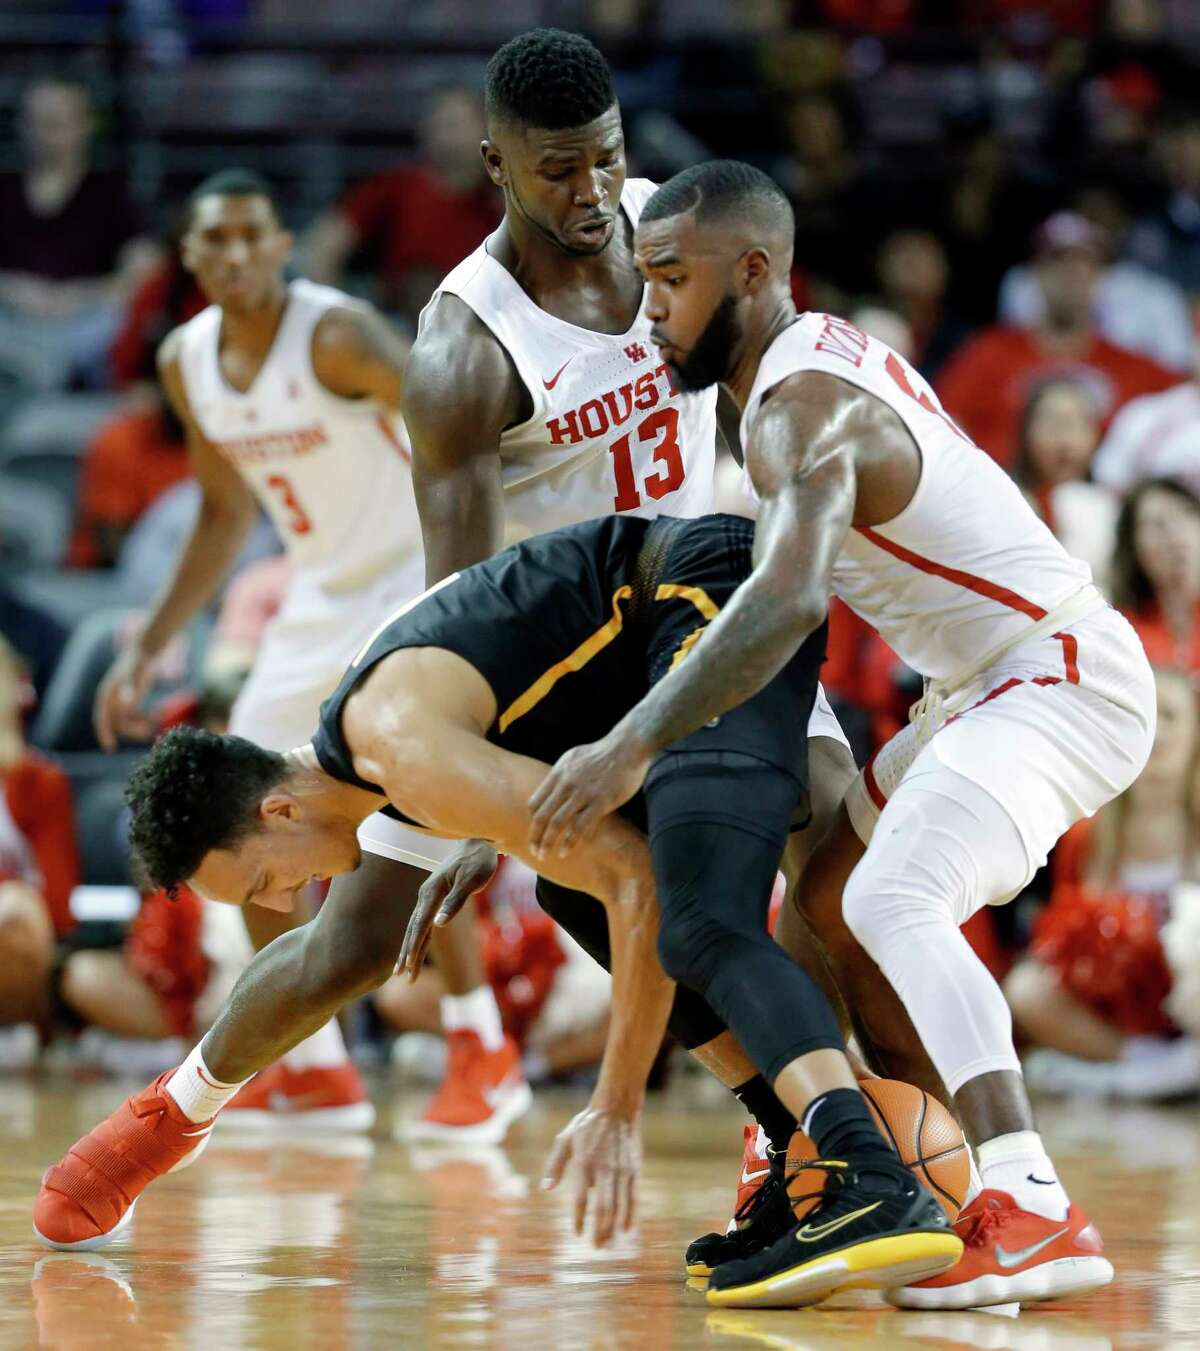 Wichita State guard Landry Shamet (11) loses the ball under pressure from Houston forward Nura Zanna (13) and guard Corey Davis Jr. (5) during the first half of their game at H&PE Arena at Texas State University Saturday, Jan. 20, 2018, in Houston, TX. (Michael Wyke / For the Chronicle)